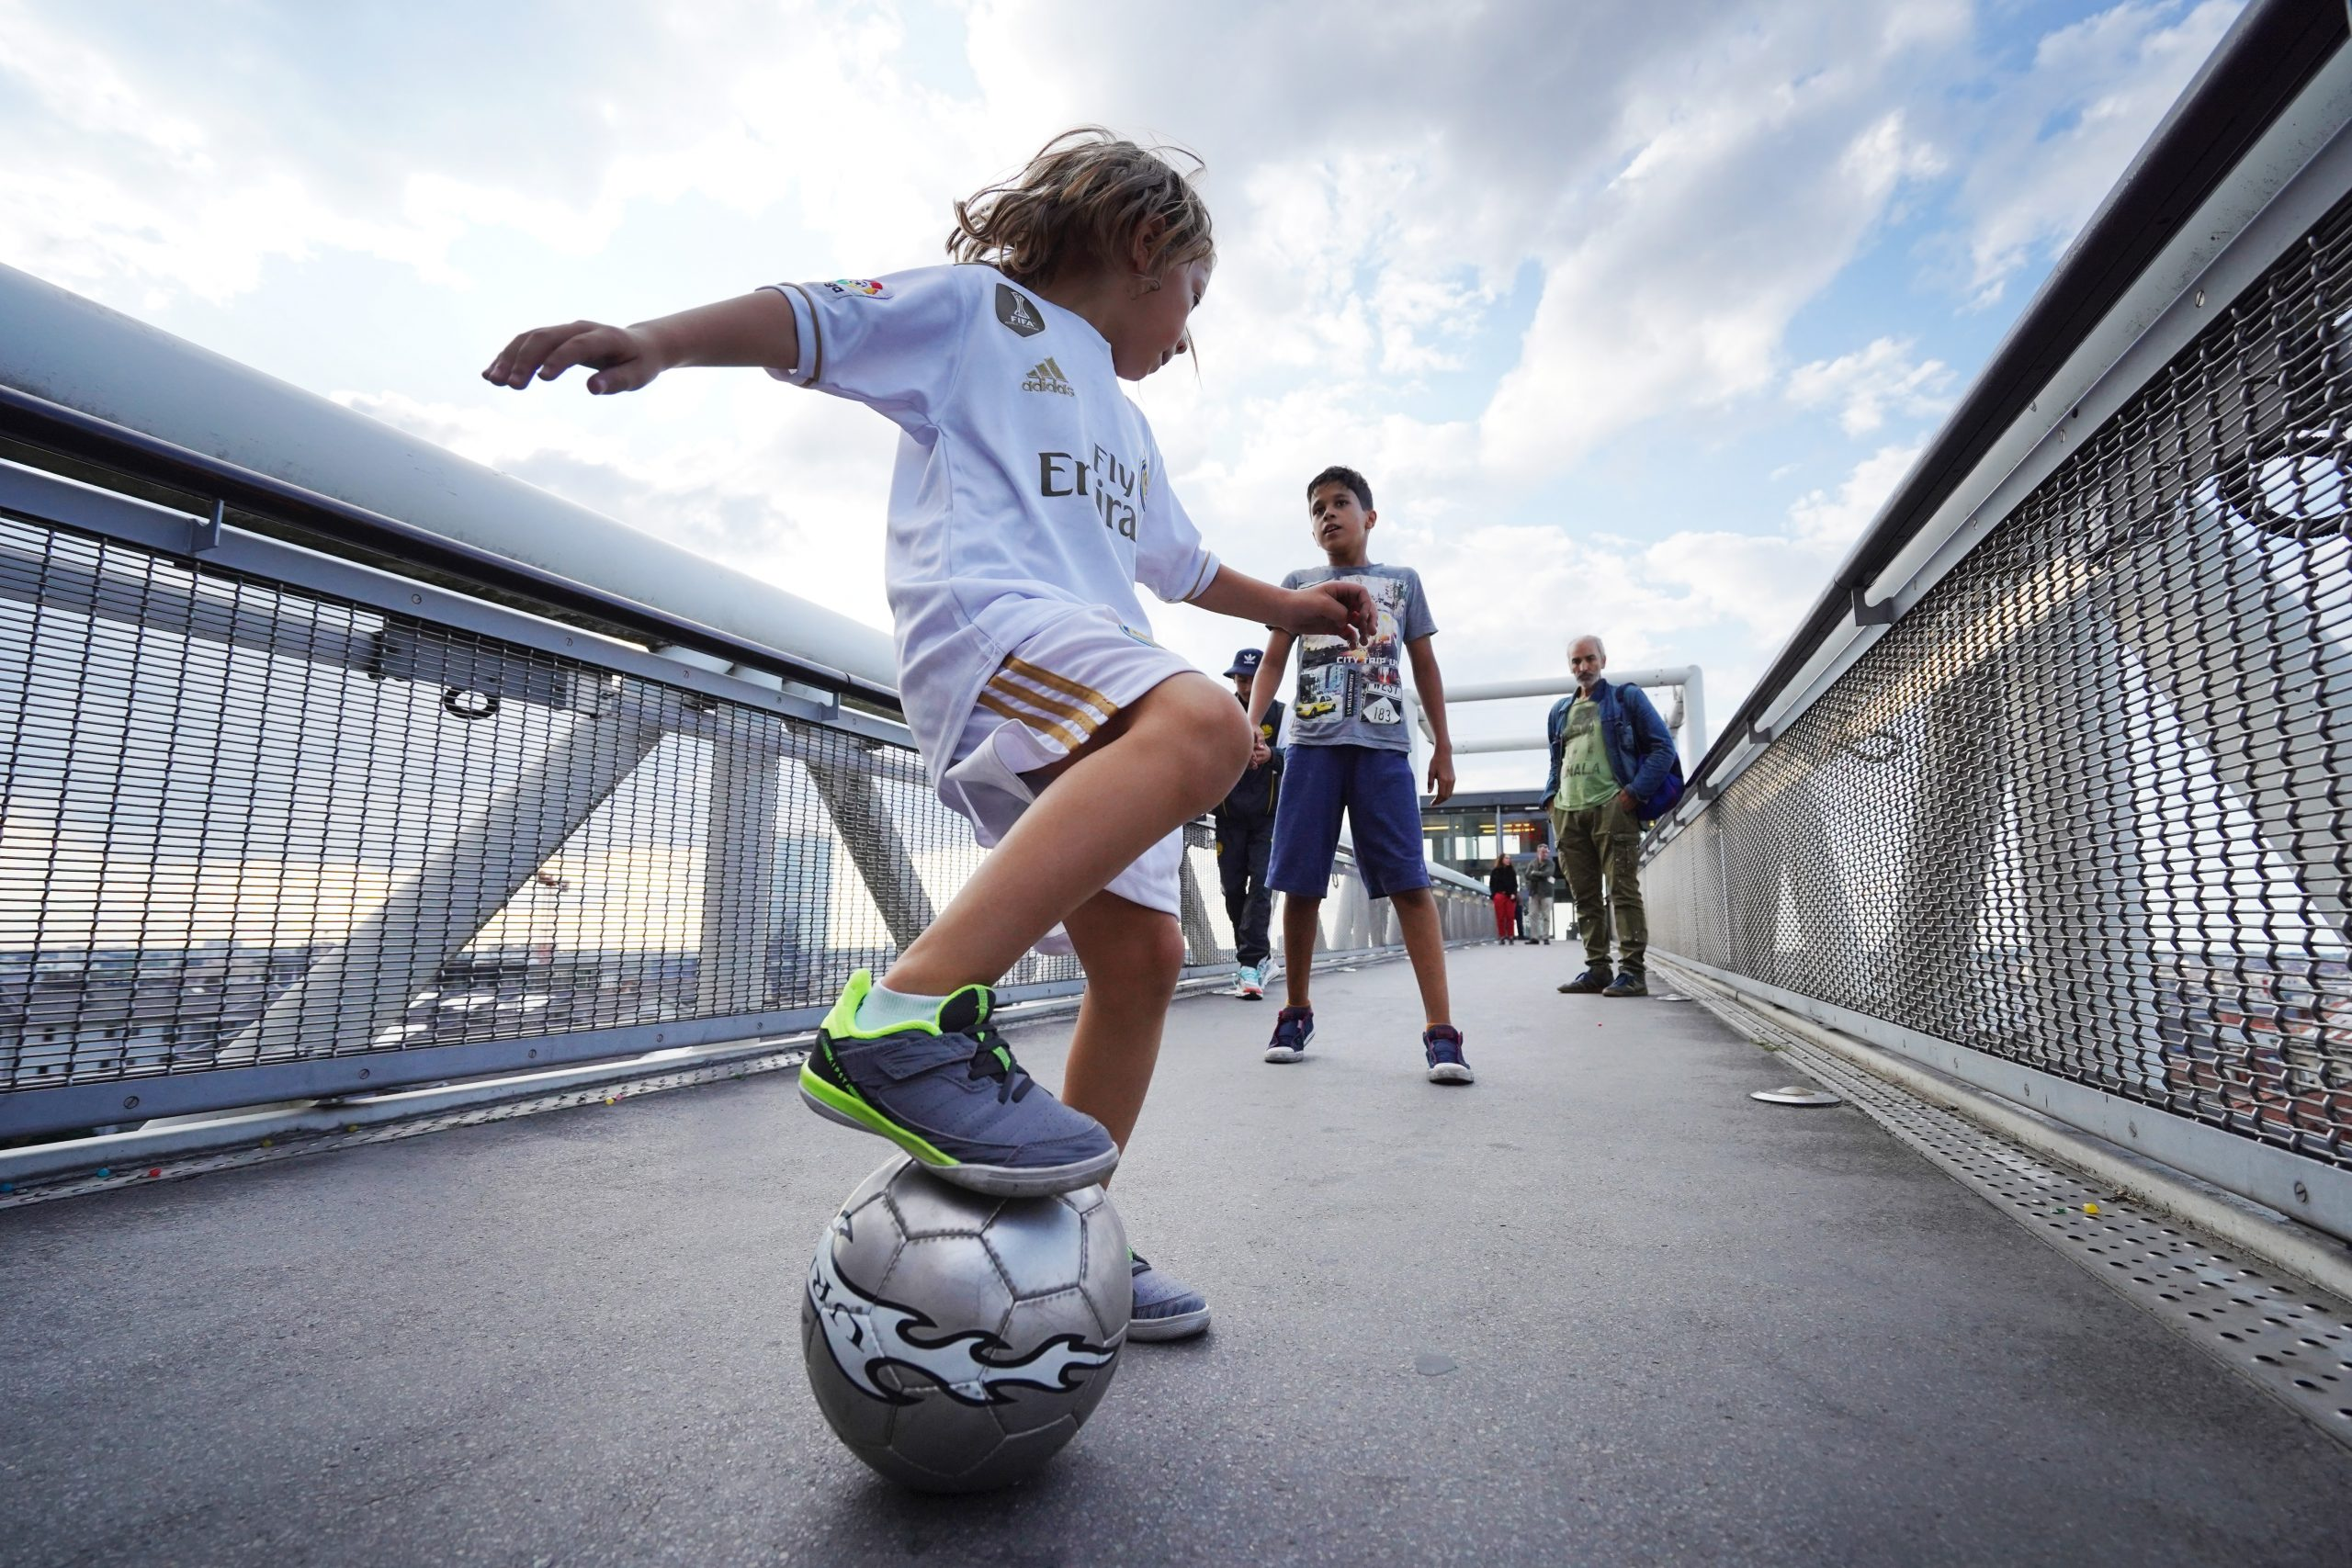 boy in white t-shirt and blue shorts playing soccer during daytime